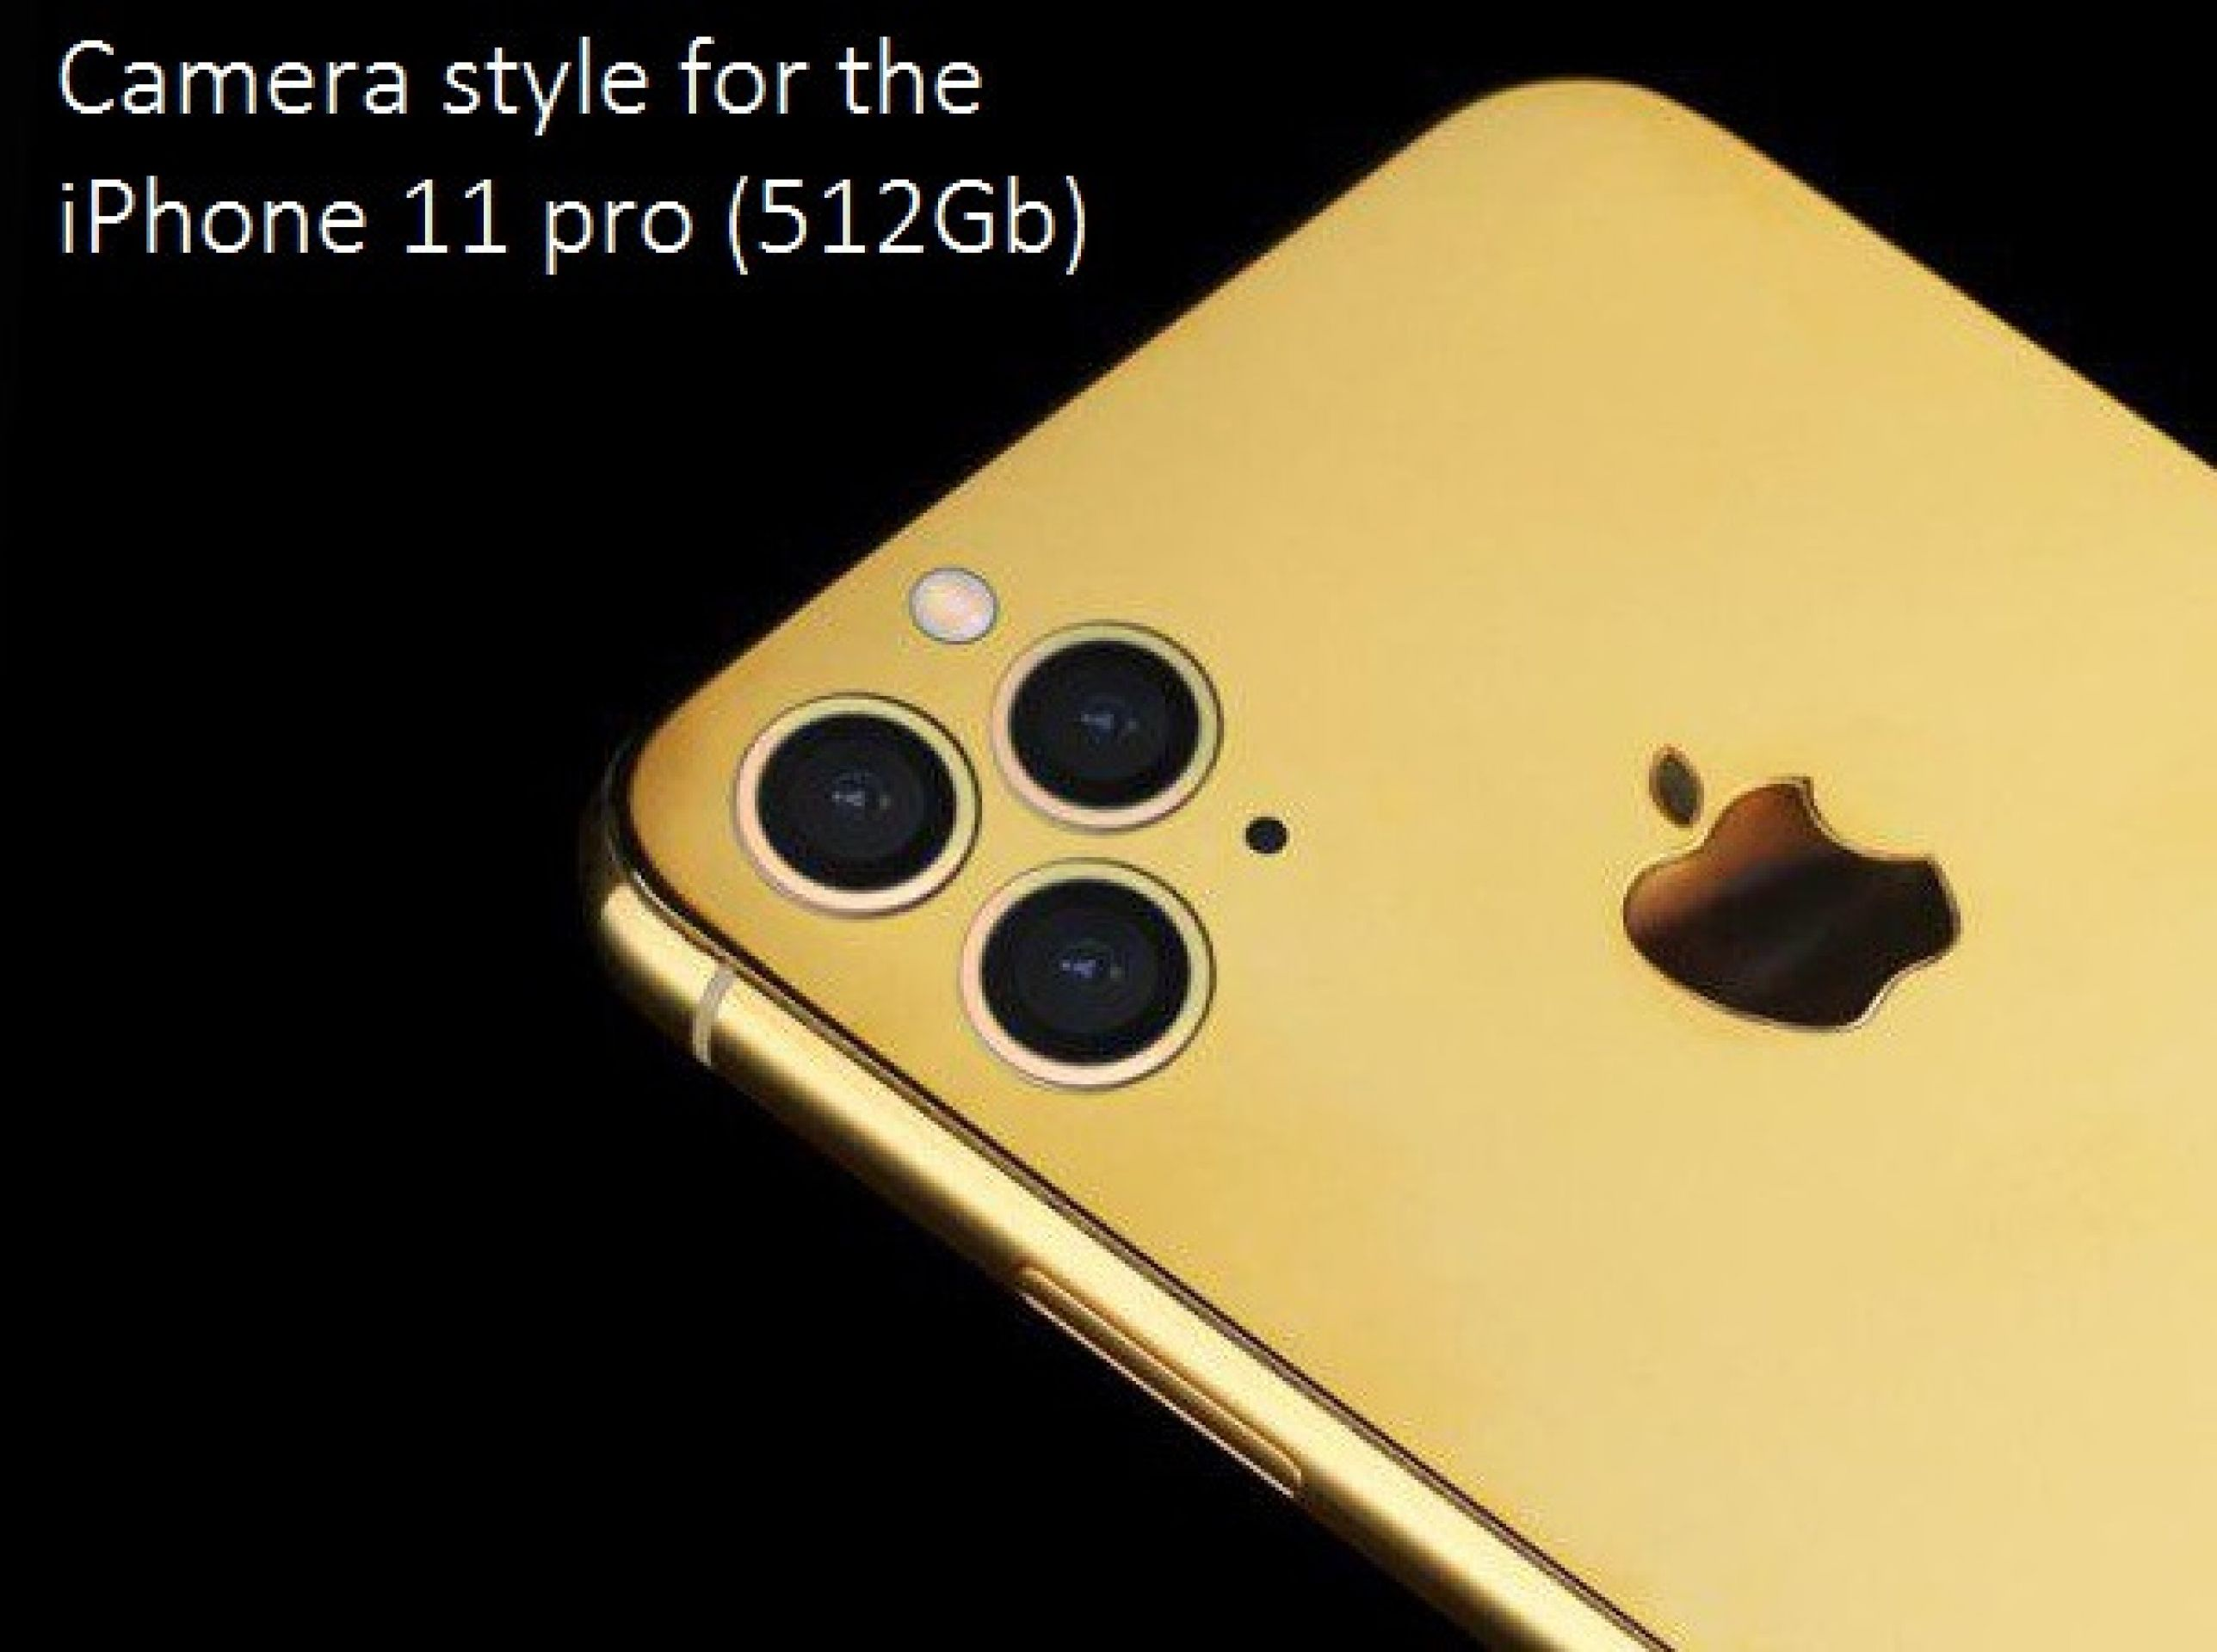 Bespoke iPhone 11 Pro 512Gb LU by Legend Dragon in 24k gold, platinum, diamonds